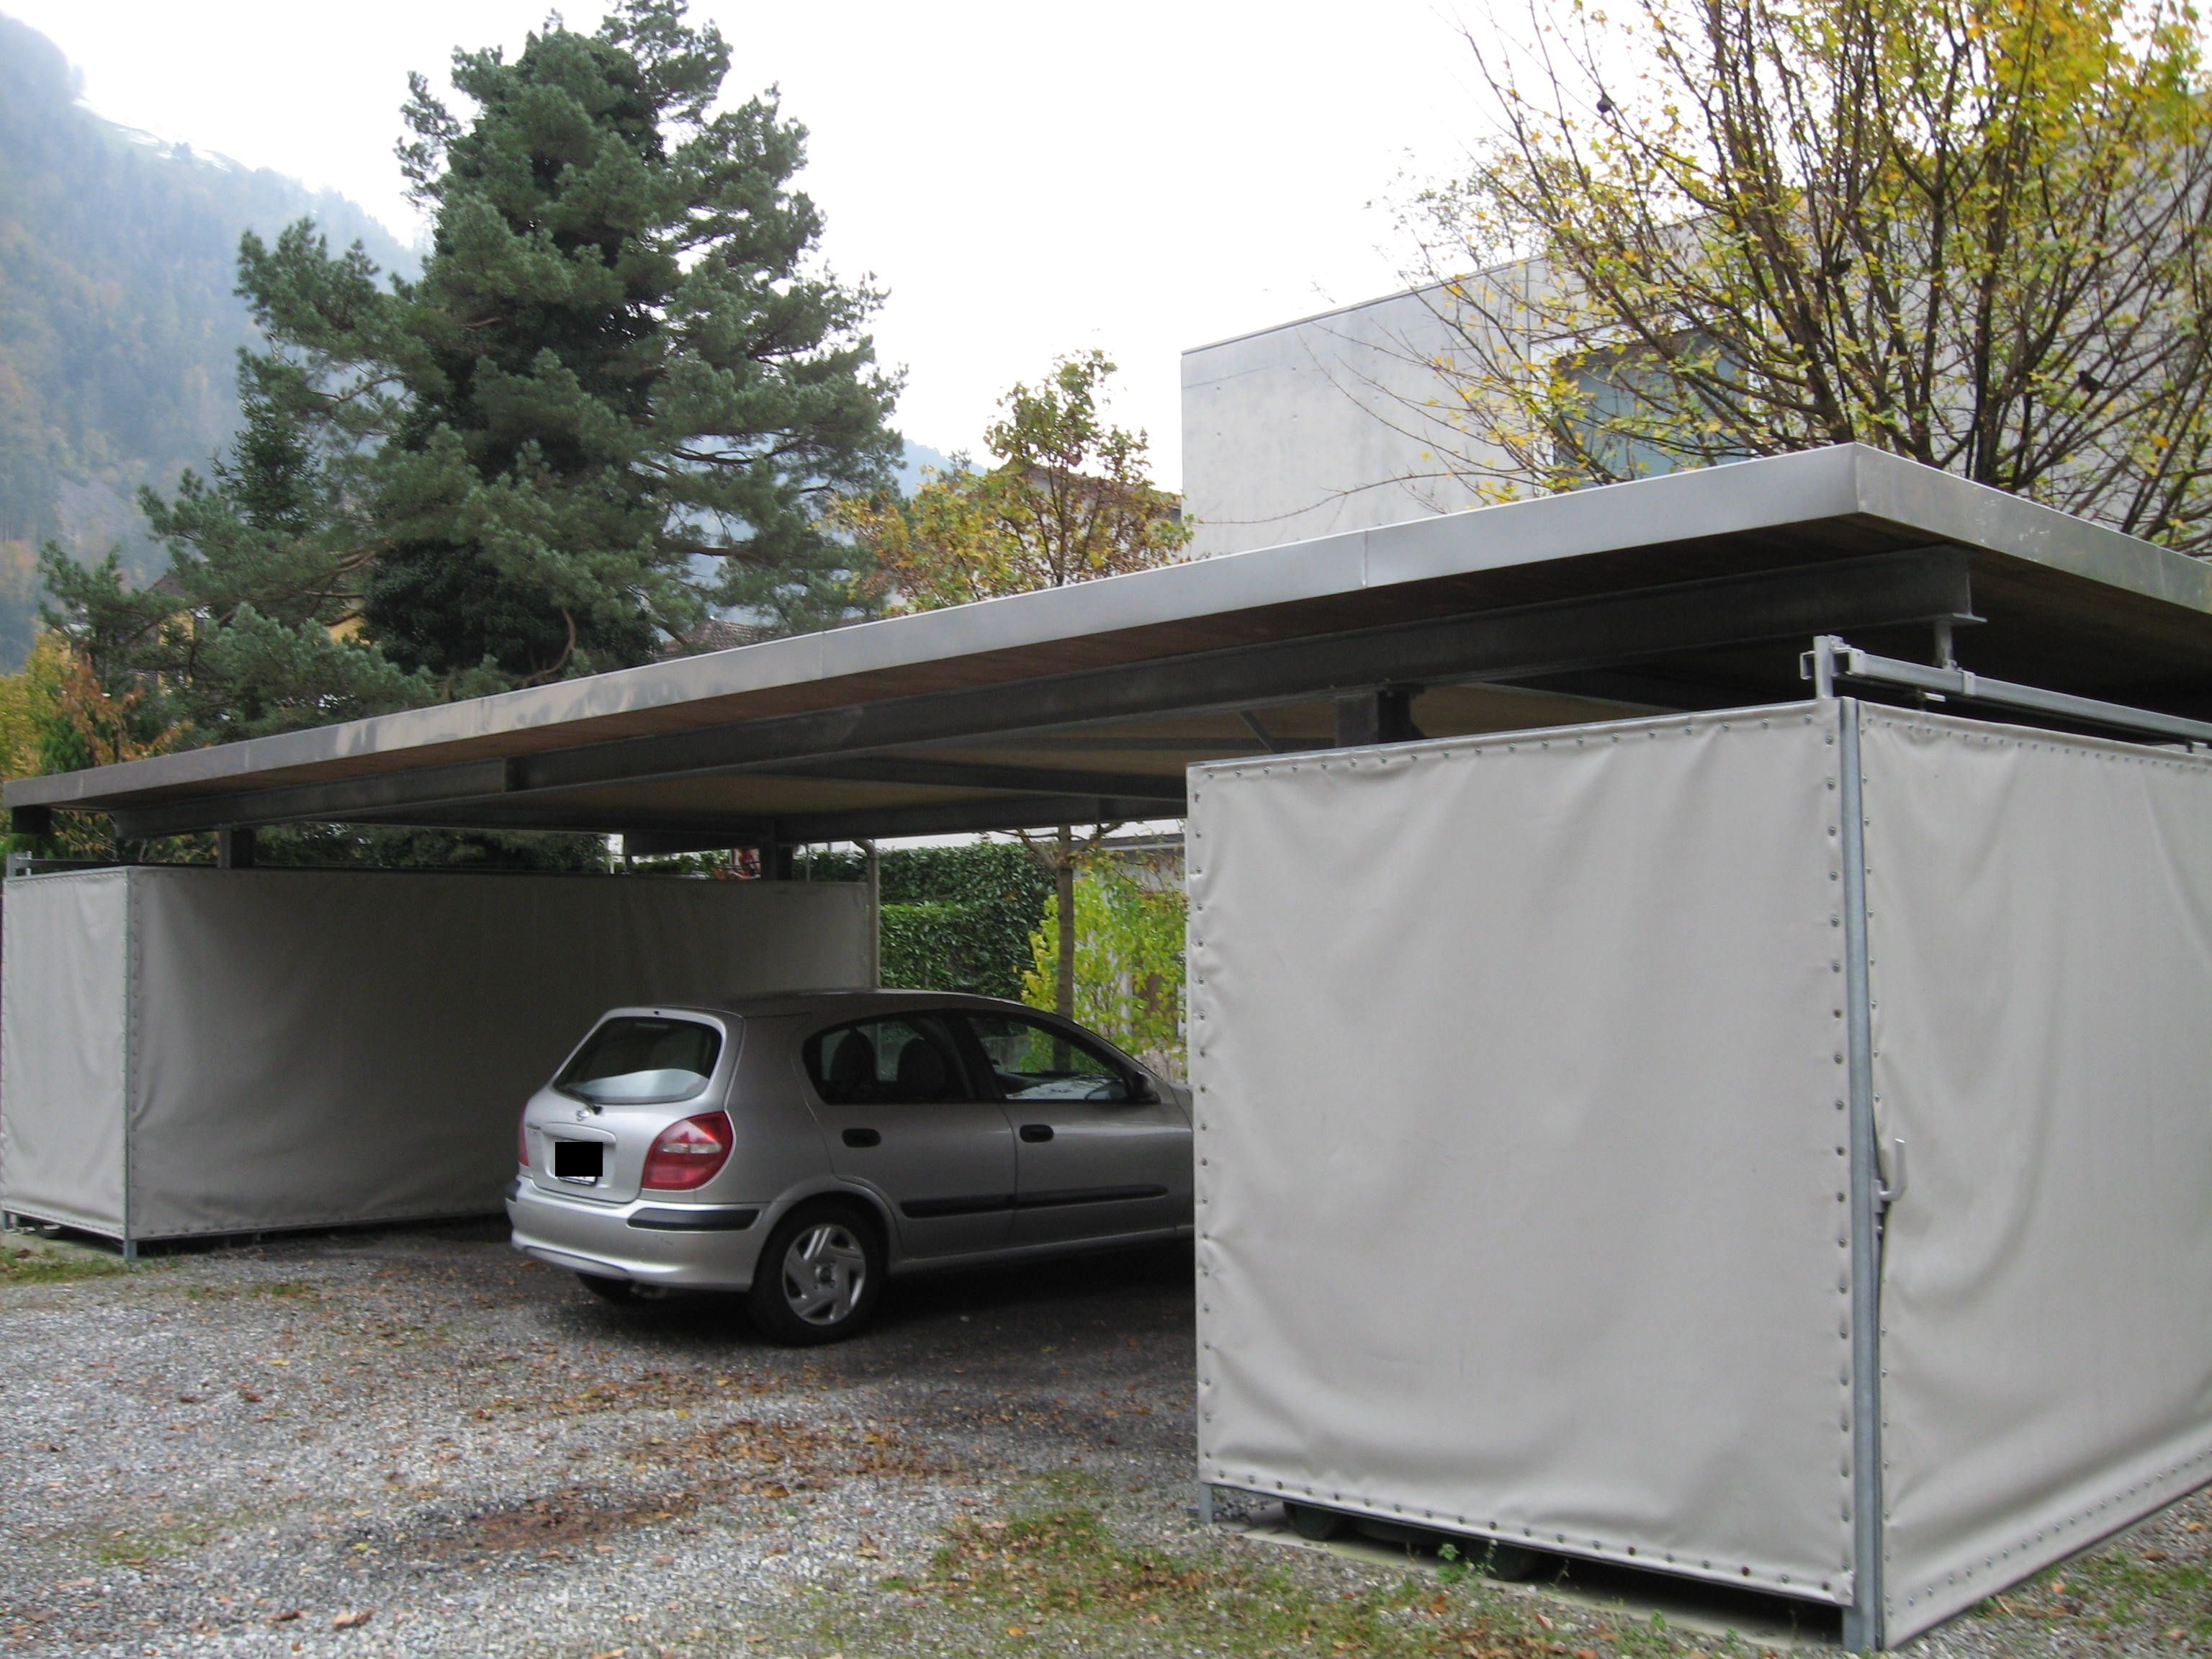 flachdach carport aus stahl mit 2 ger teschuppen f r 3. Black Bedroom Furniture Sets. Home Design Ideas